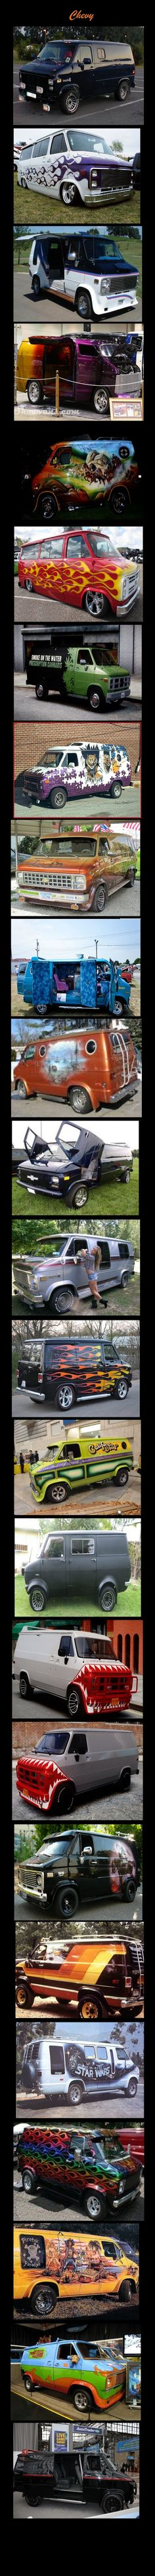 small resolution of chevy duggy doo jstyle355 astro van